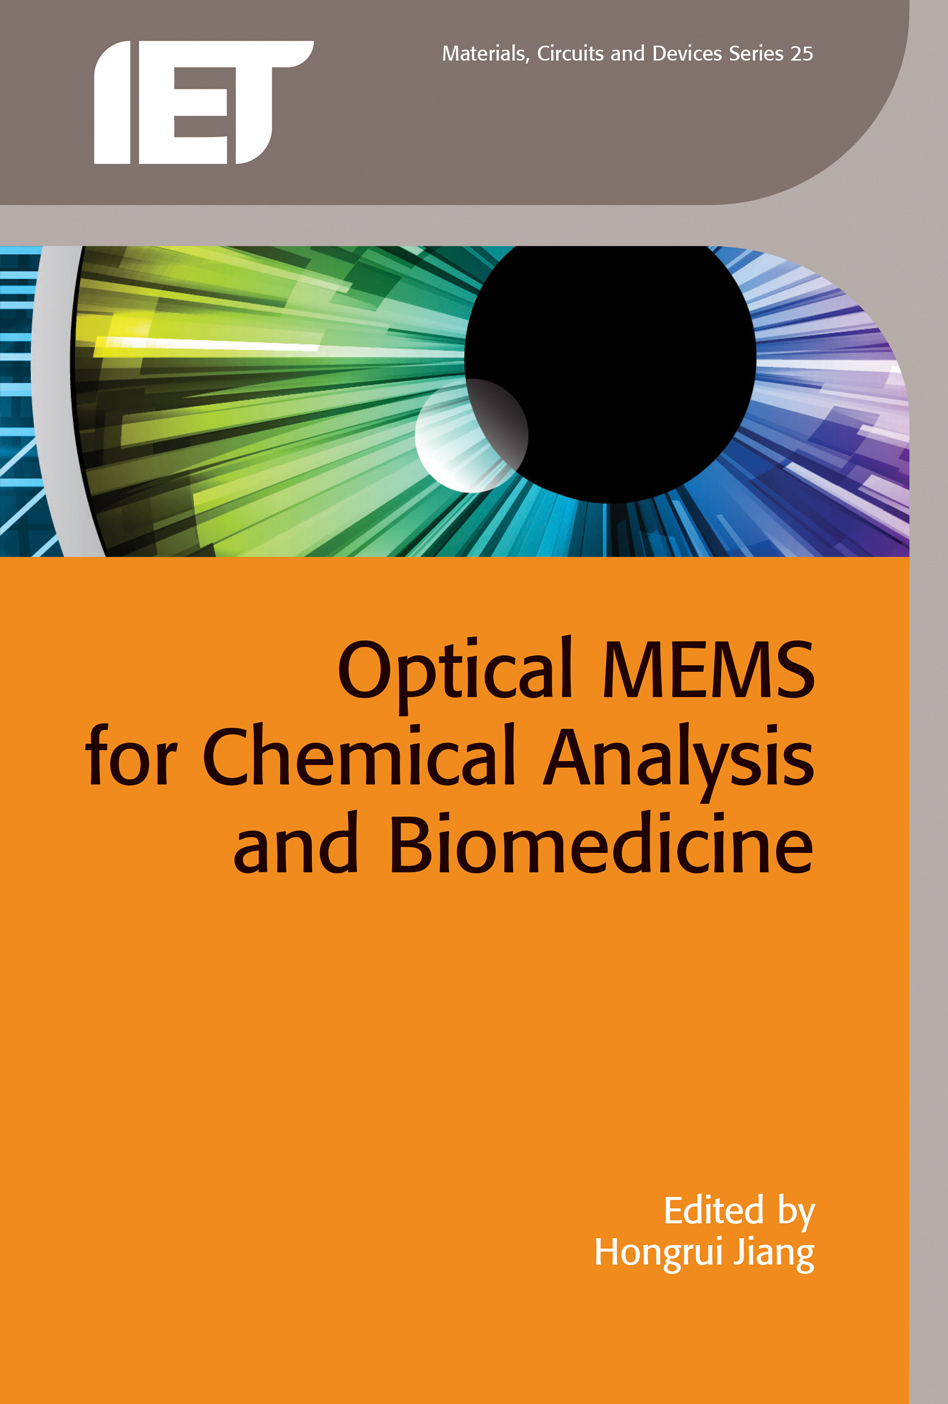 Optical MEMS for Chemical Analysis and Biomedicine